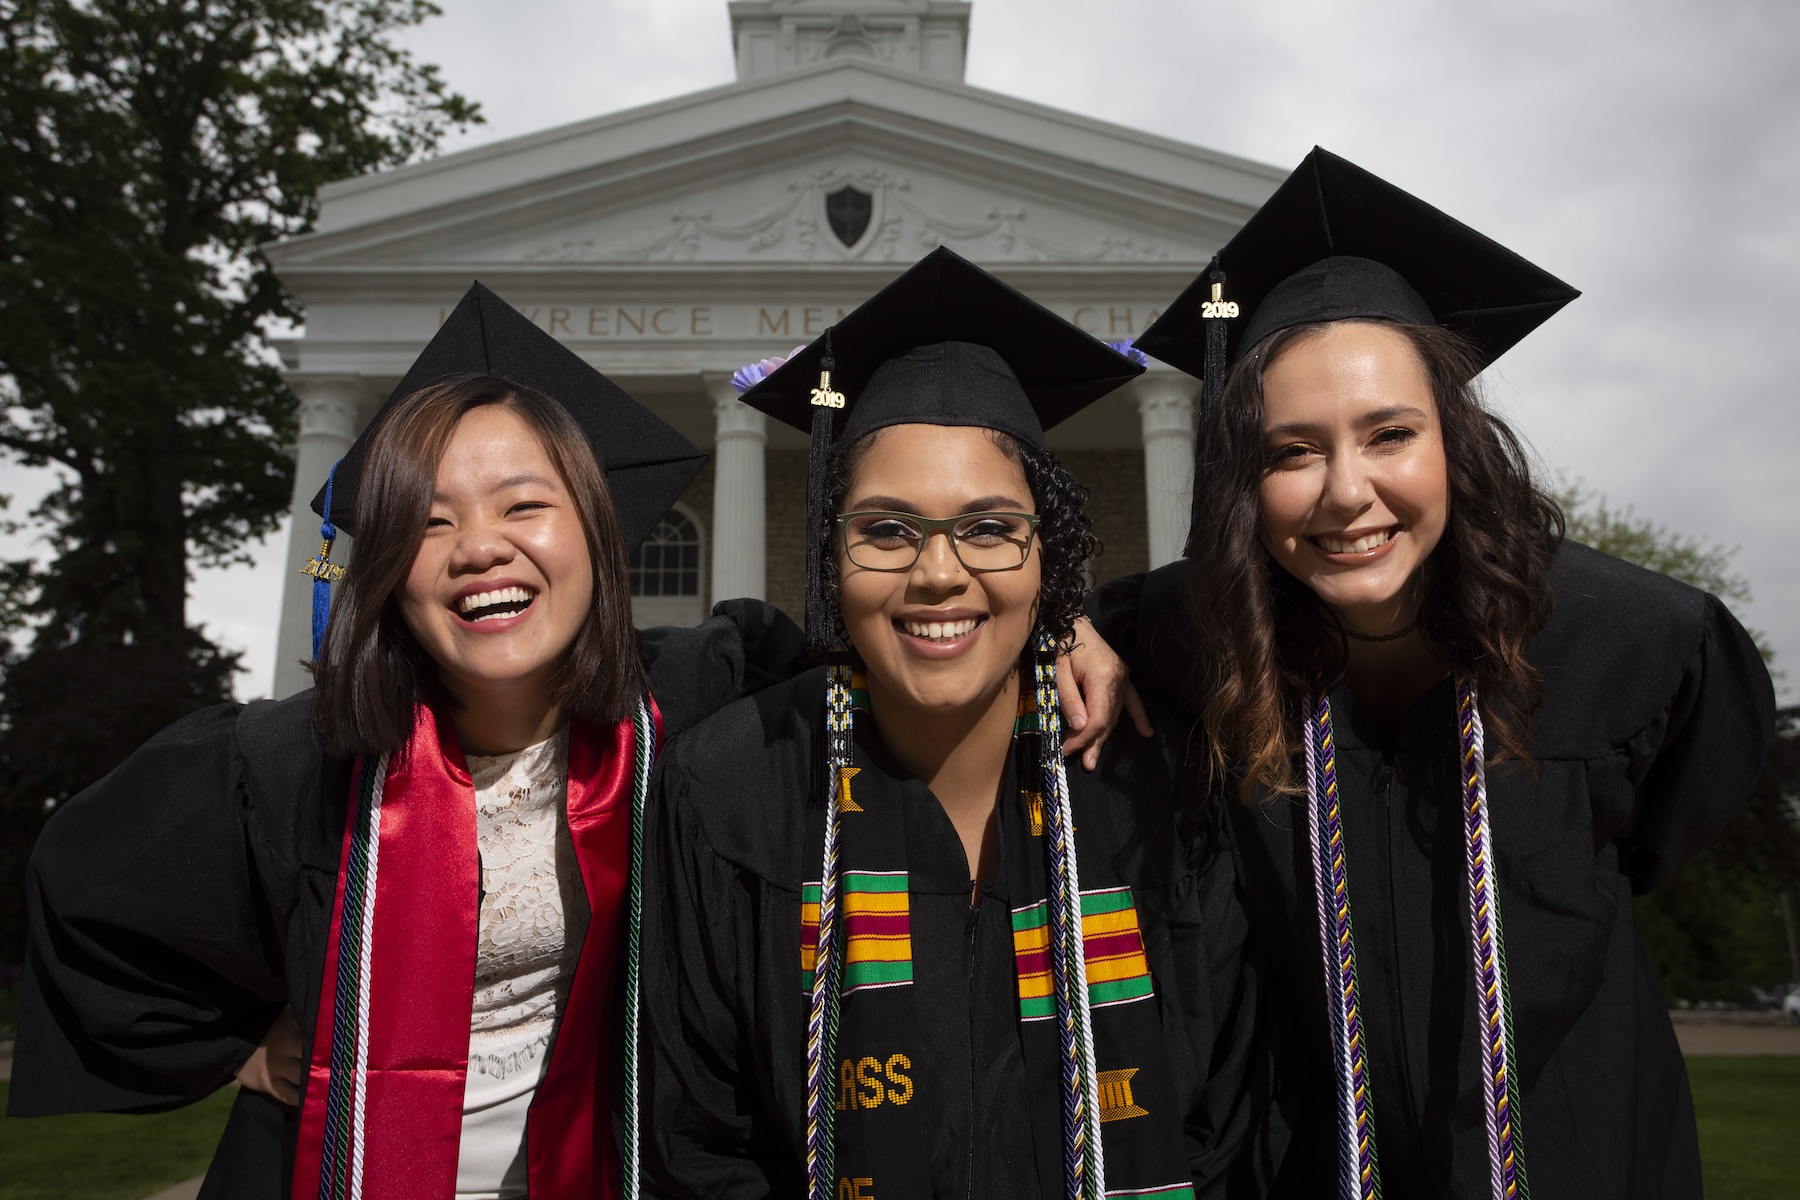 Hoa Huynh, Jordyn Pleiseis, and Miranda Salazar pose in cap and gown in front of Memorial Chapel on Commencement morning.